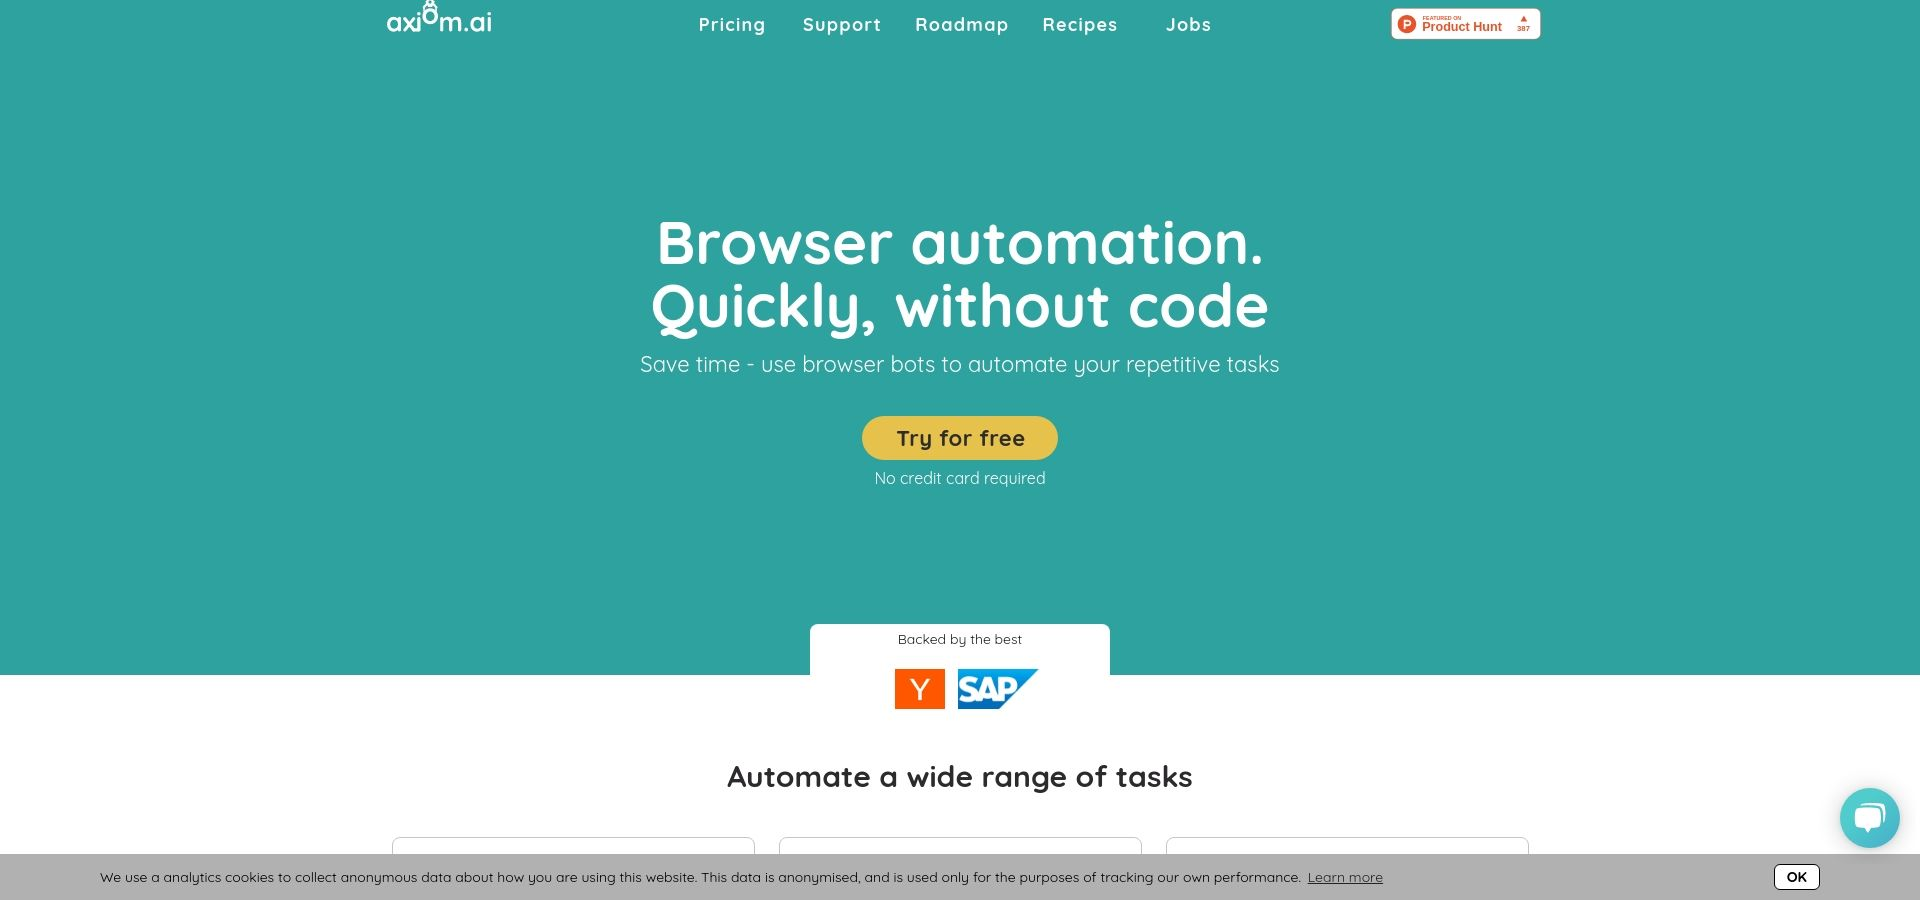 Axiom - create browser bots quickly without code